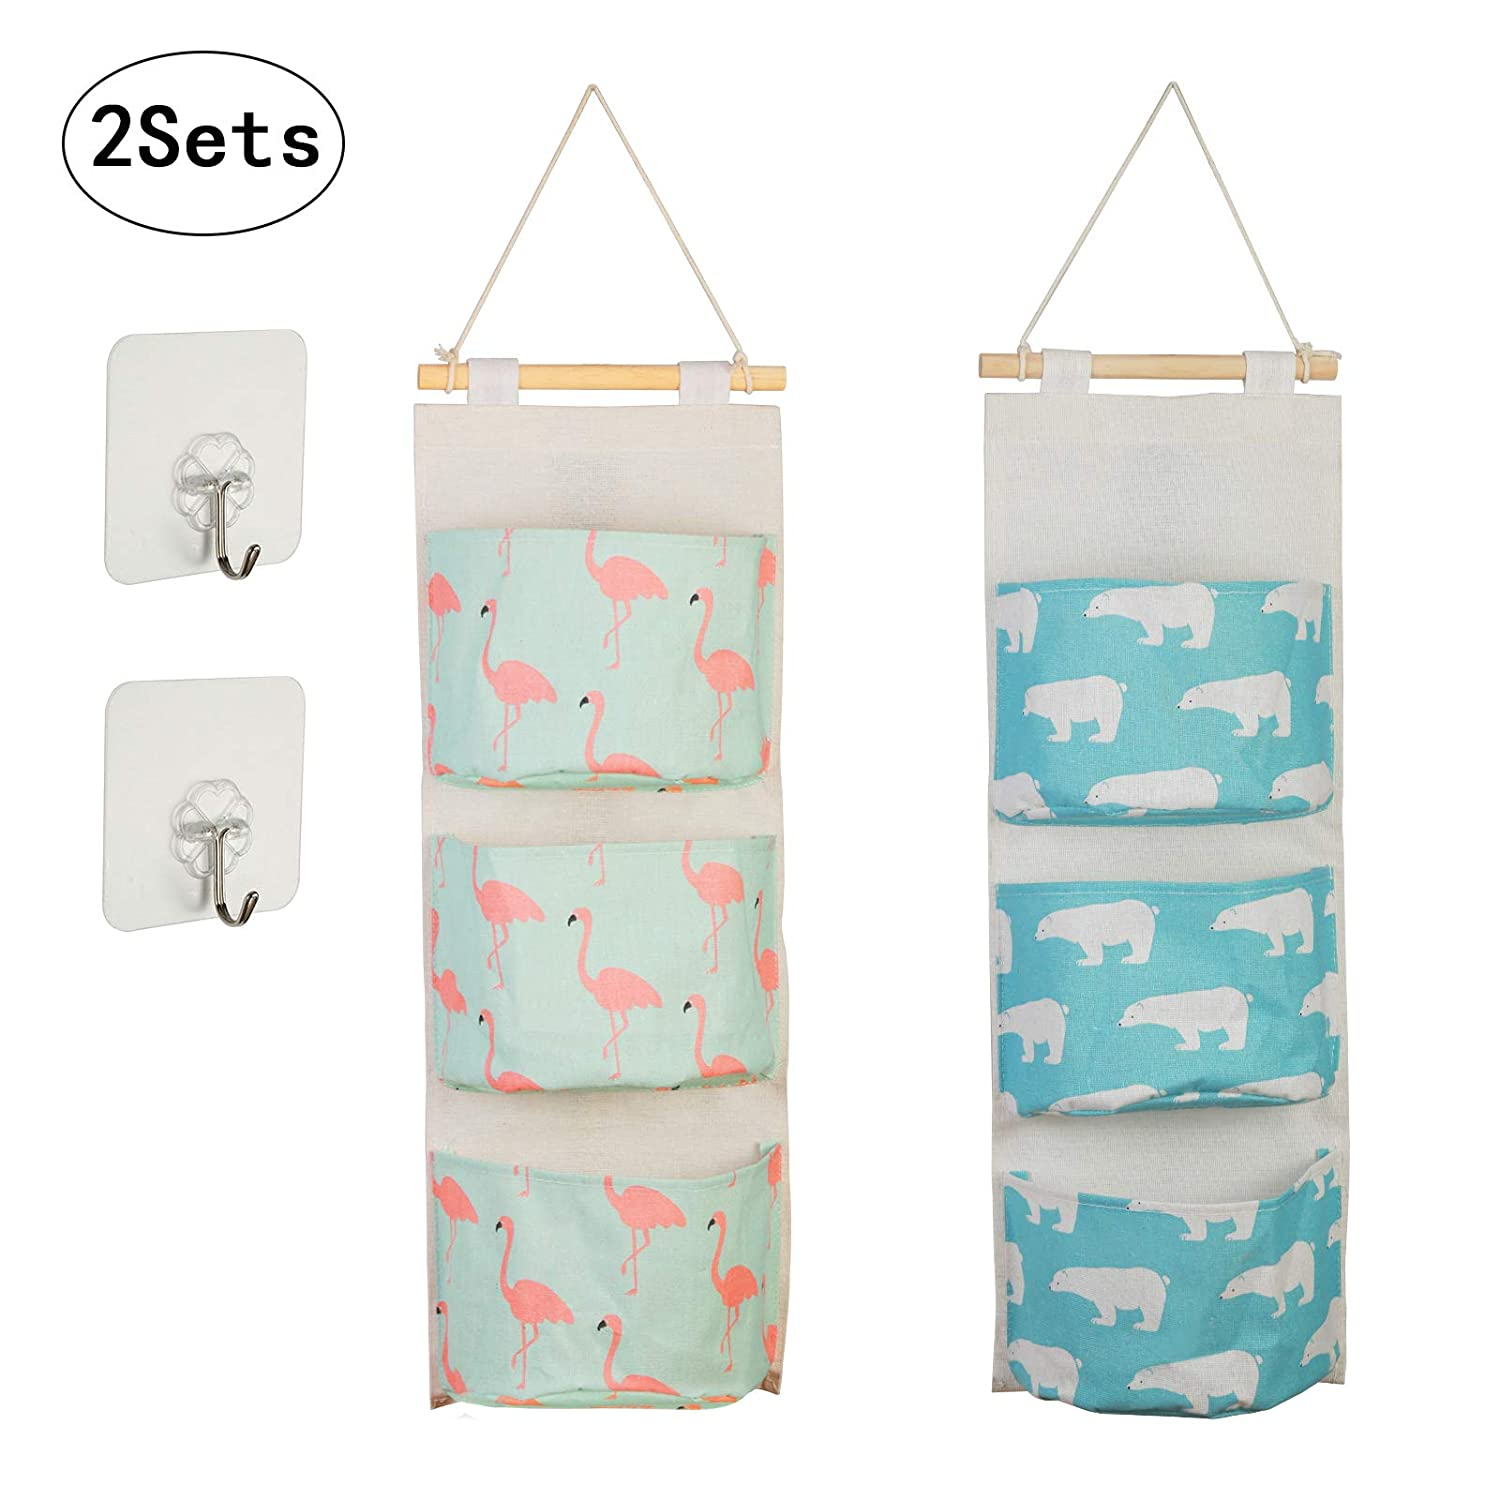 KAKOO 2pcs Cartoon Pattern Hanging Storage Bag Waterproof Cotton Closet Wall Door Storage with 3 Pockets and 2 Pcs Self Adhesive Hooks for Kitchen Bedroom Bathroom Office